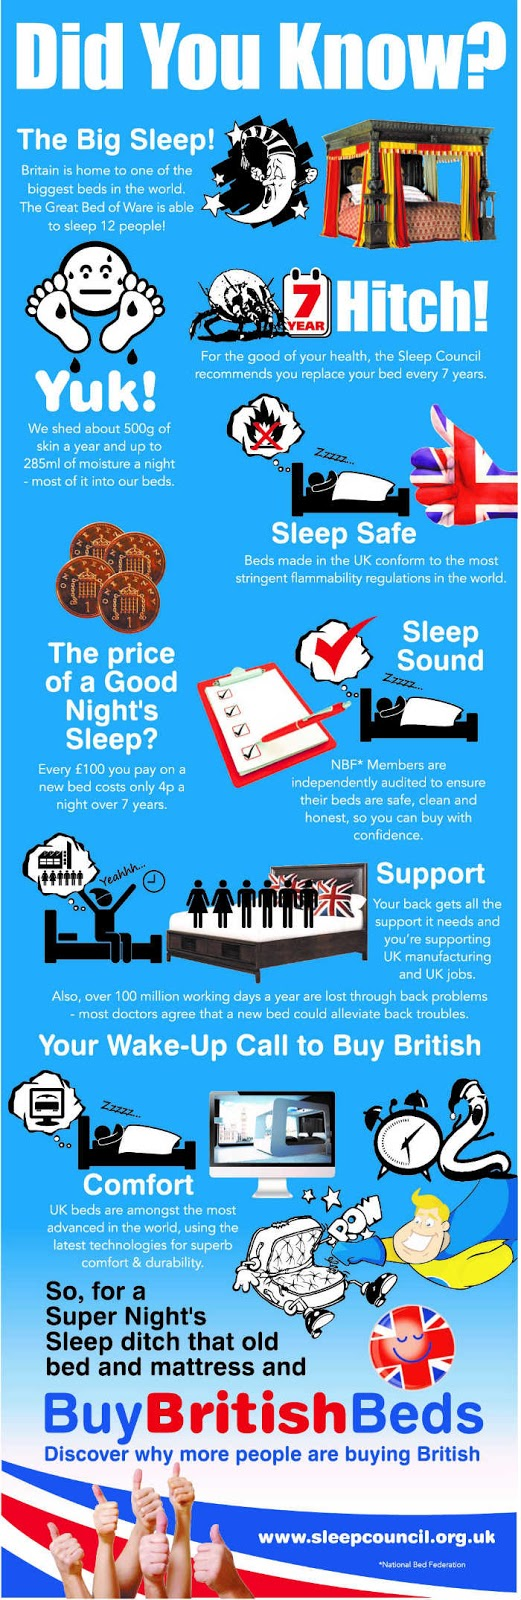 Buy British Beds